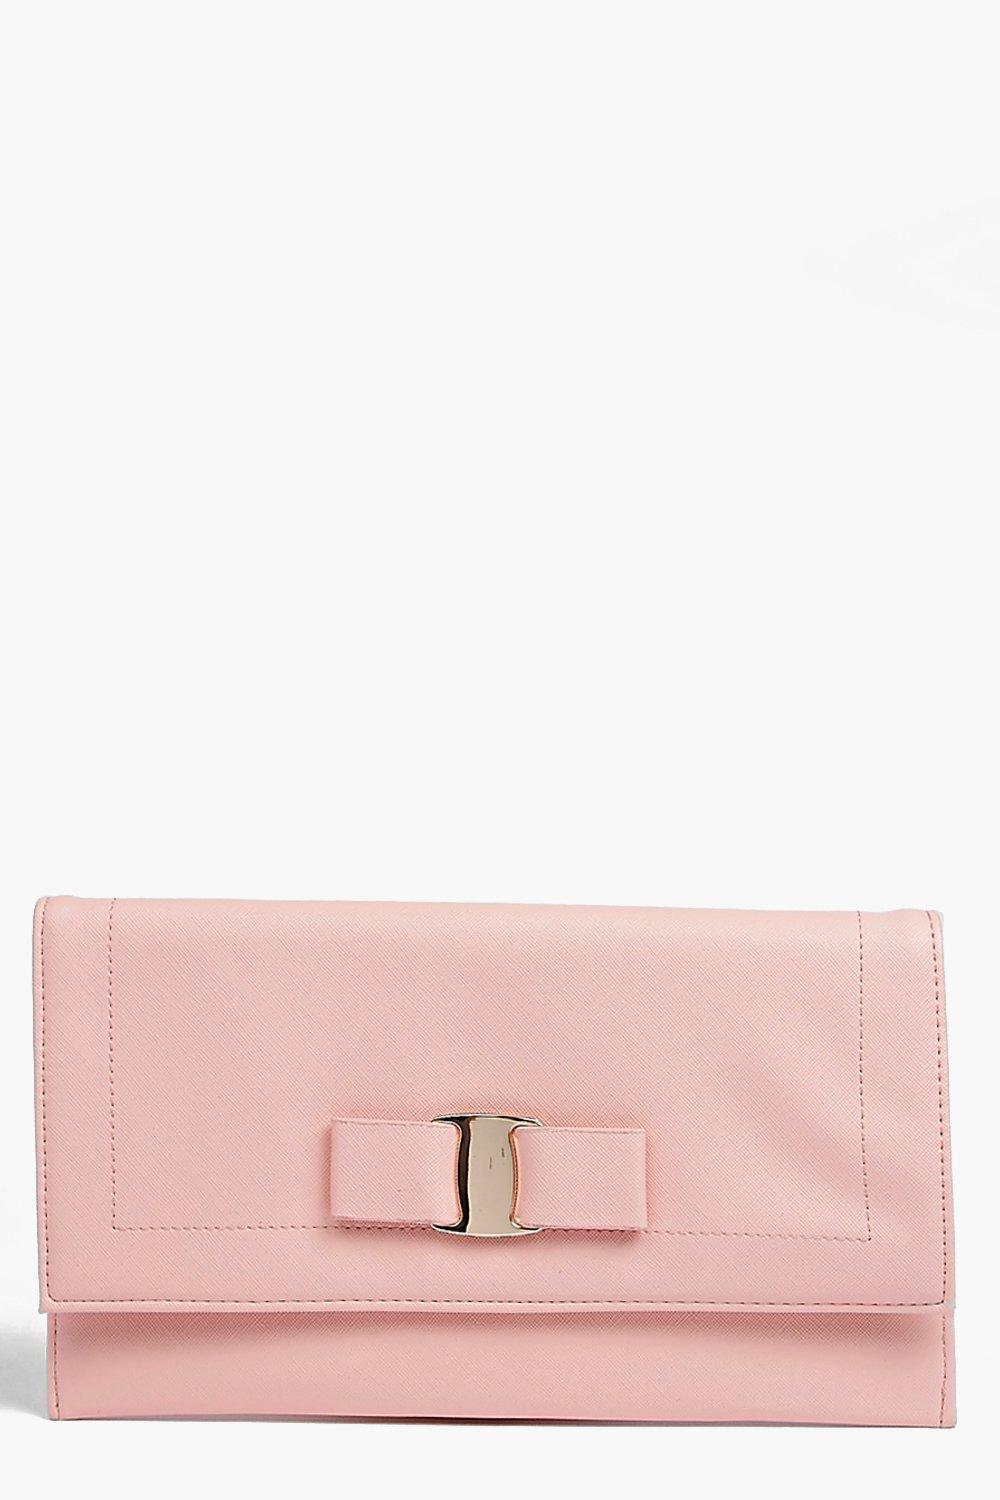 Bow Front Clutch Bag blush